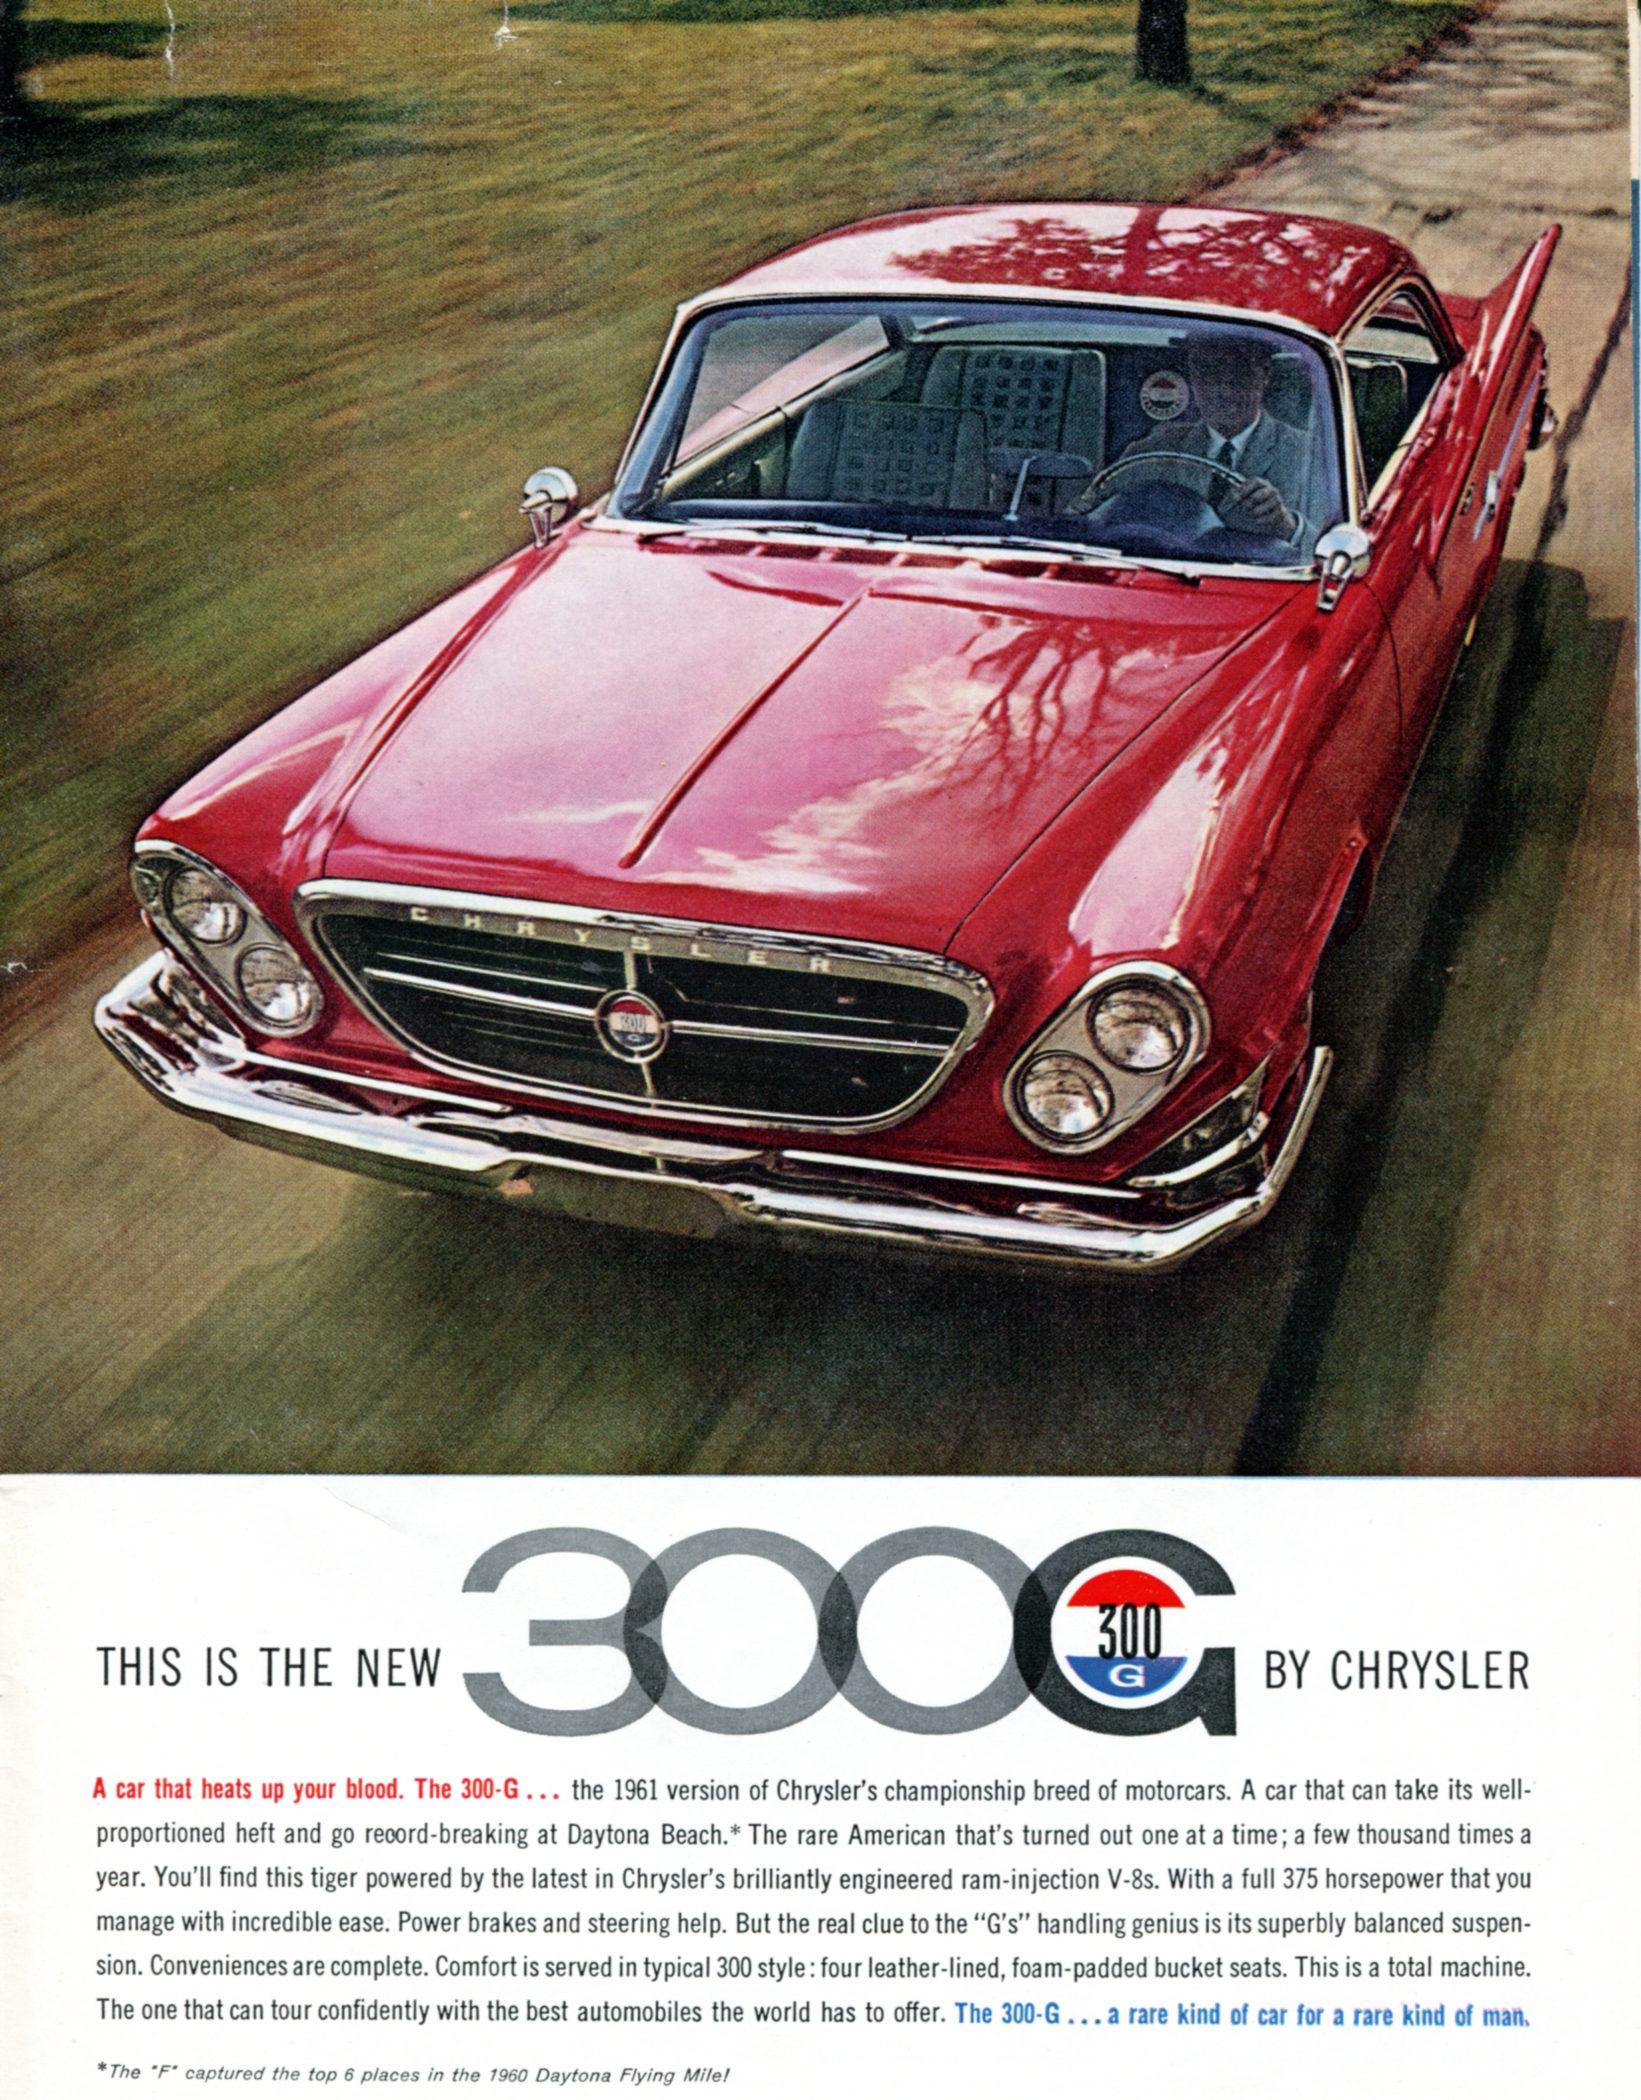 1961 Chrysler 300G - published in Sports Cars Illustrated - January 1961